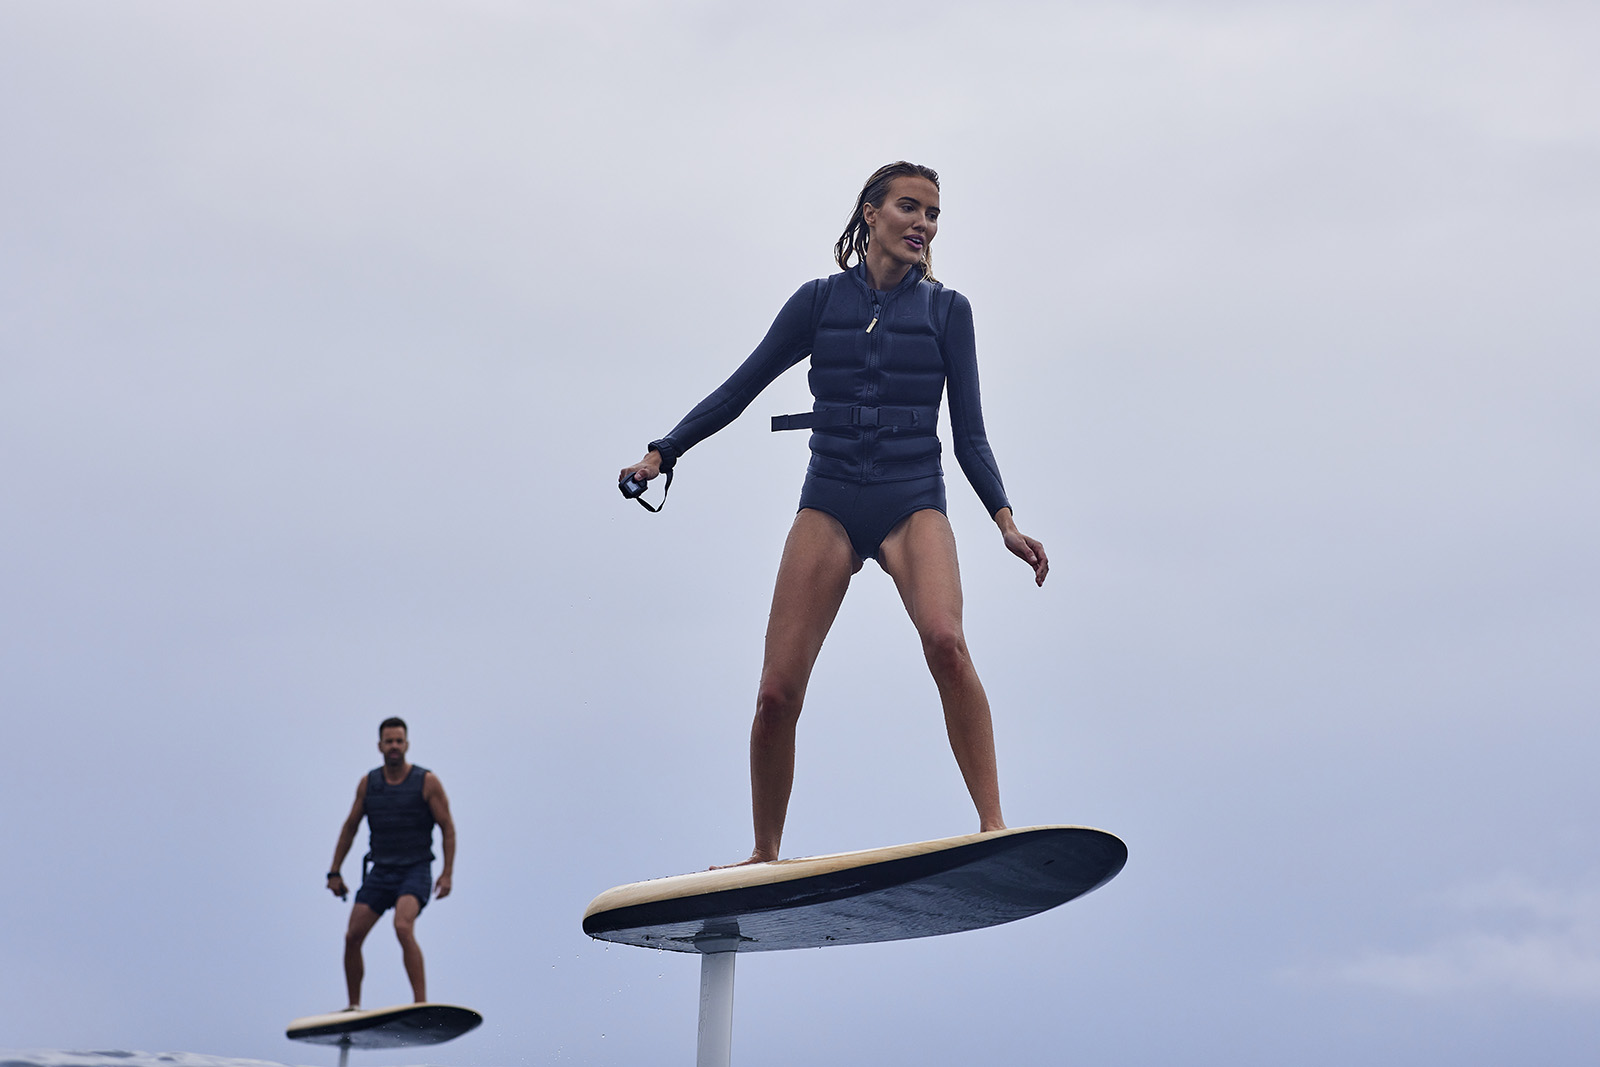 Fliteboard (Photo by Andrew Agcaoili)